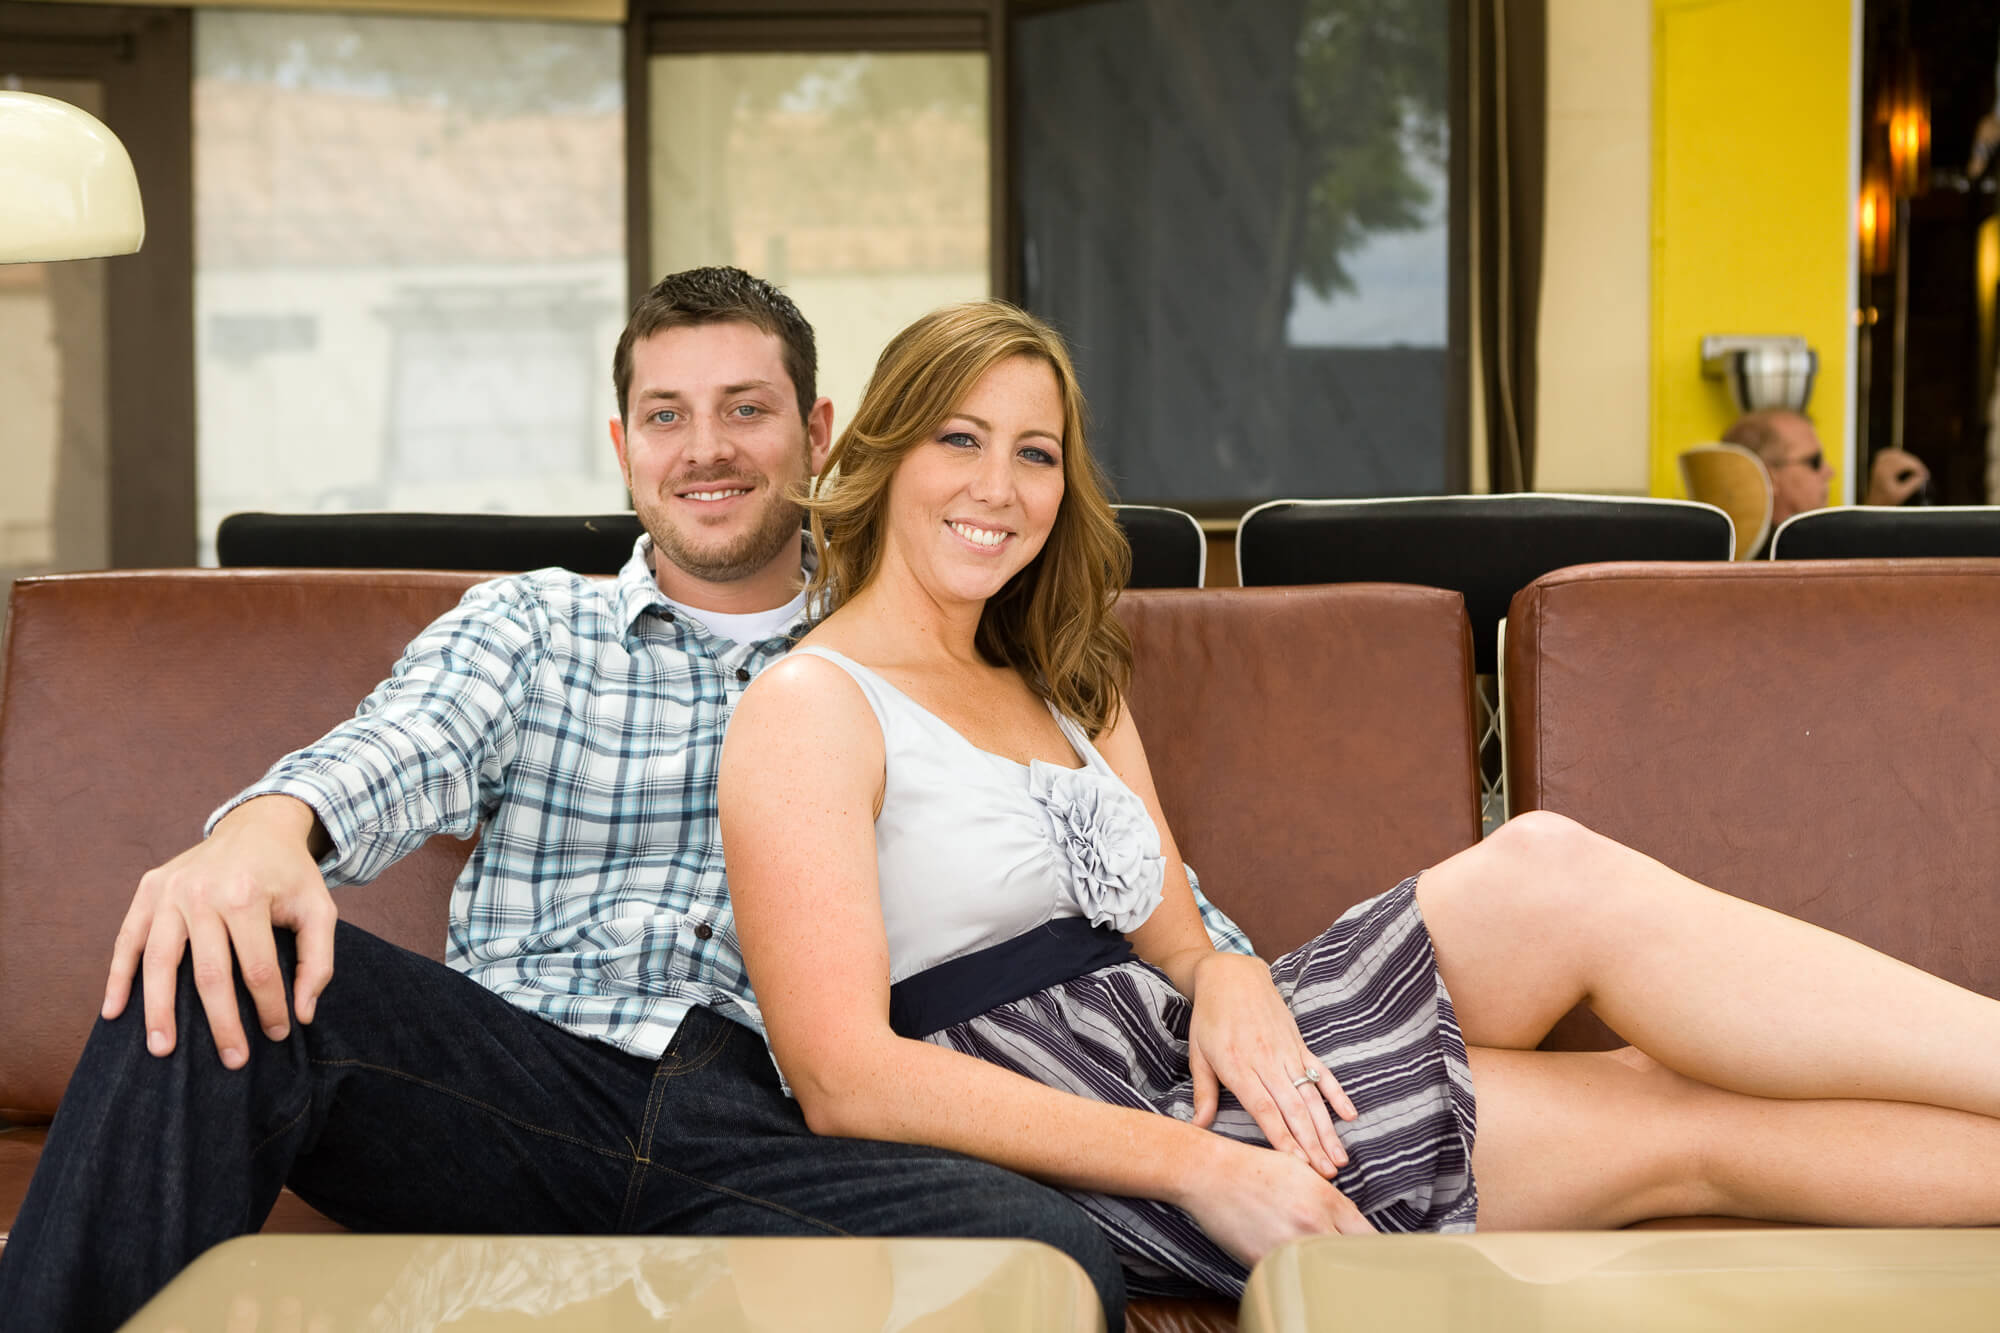 Erin and Brandon's Orlando engagement photo session